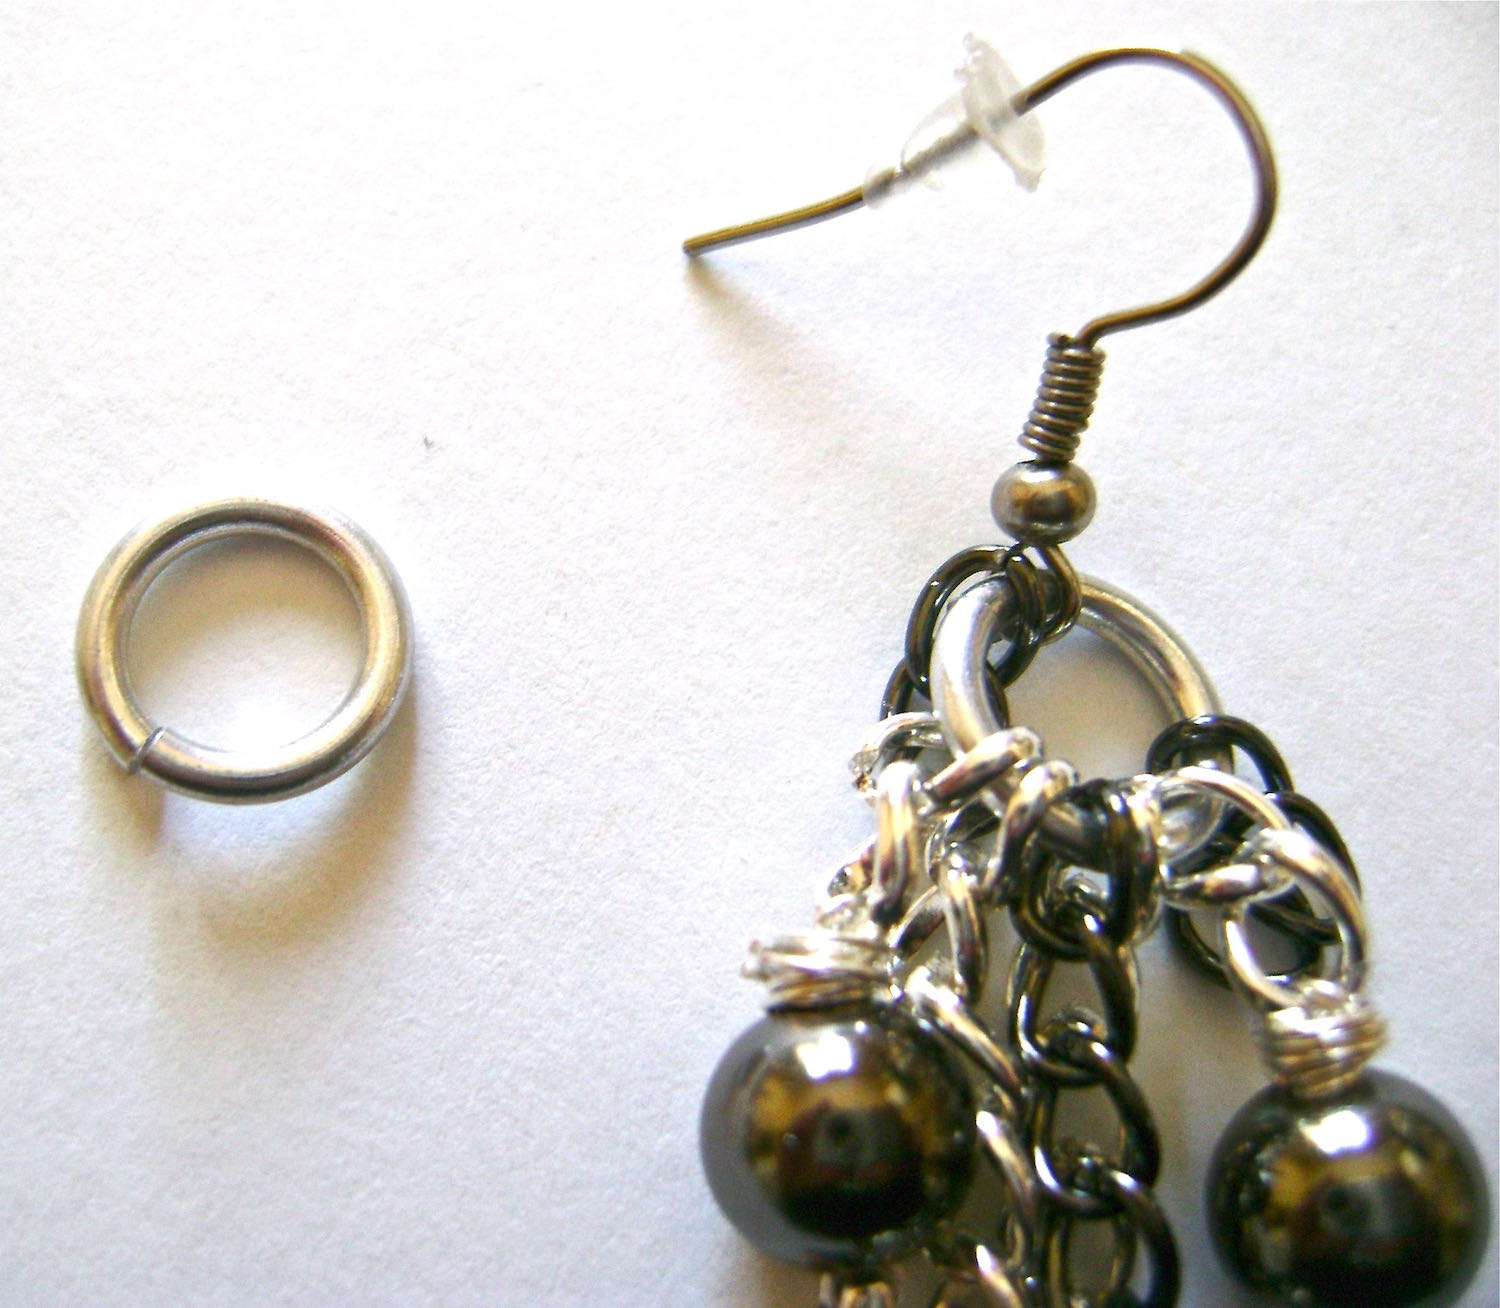 step 9 - To complete, attach the seven chain sections (see photo in step 8) in order onto a large jump ring followed by a purchased earring wire.